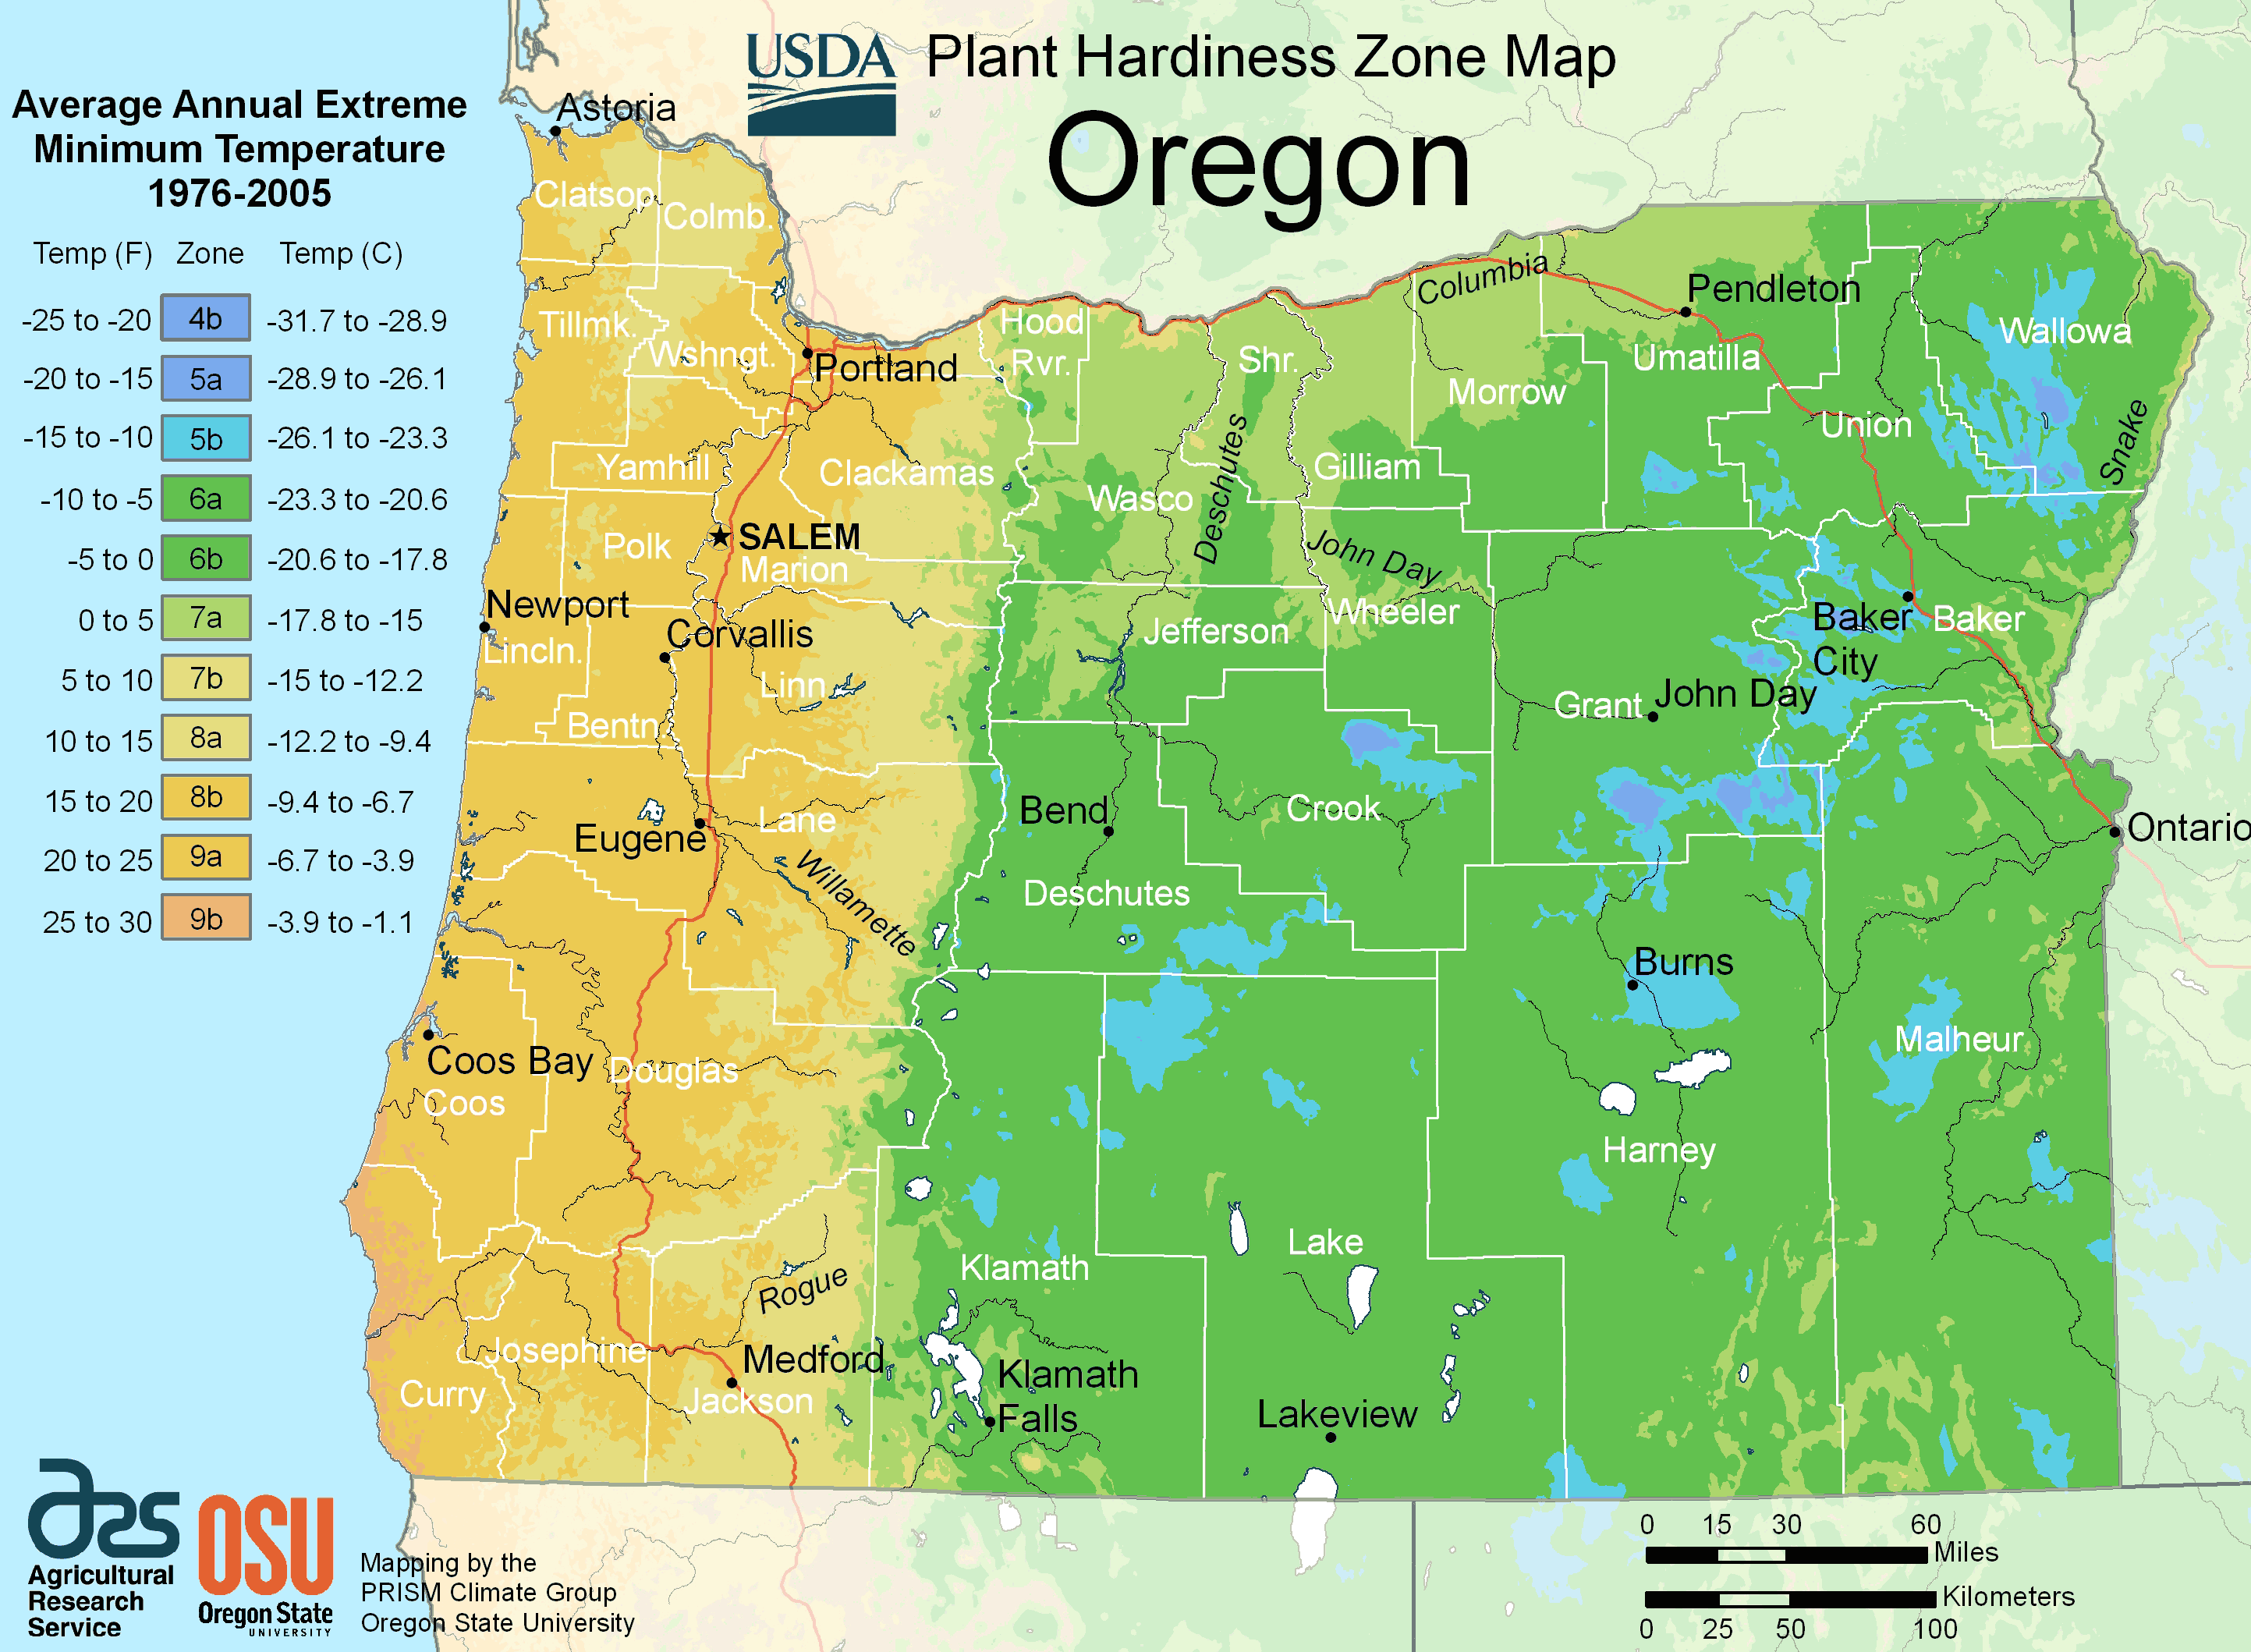 Oregon Map Image.Oregon Alabama Plant Hardiness Zone Map Mapsof Net